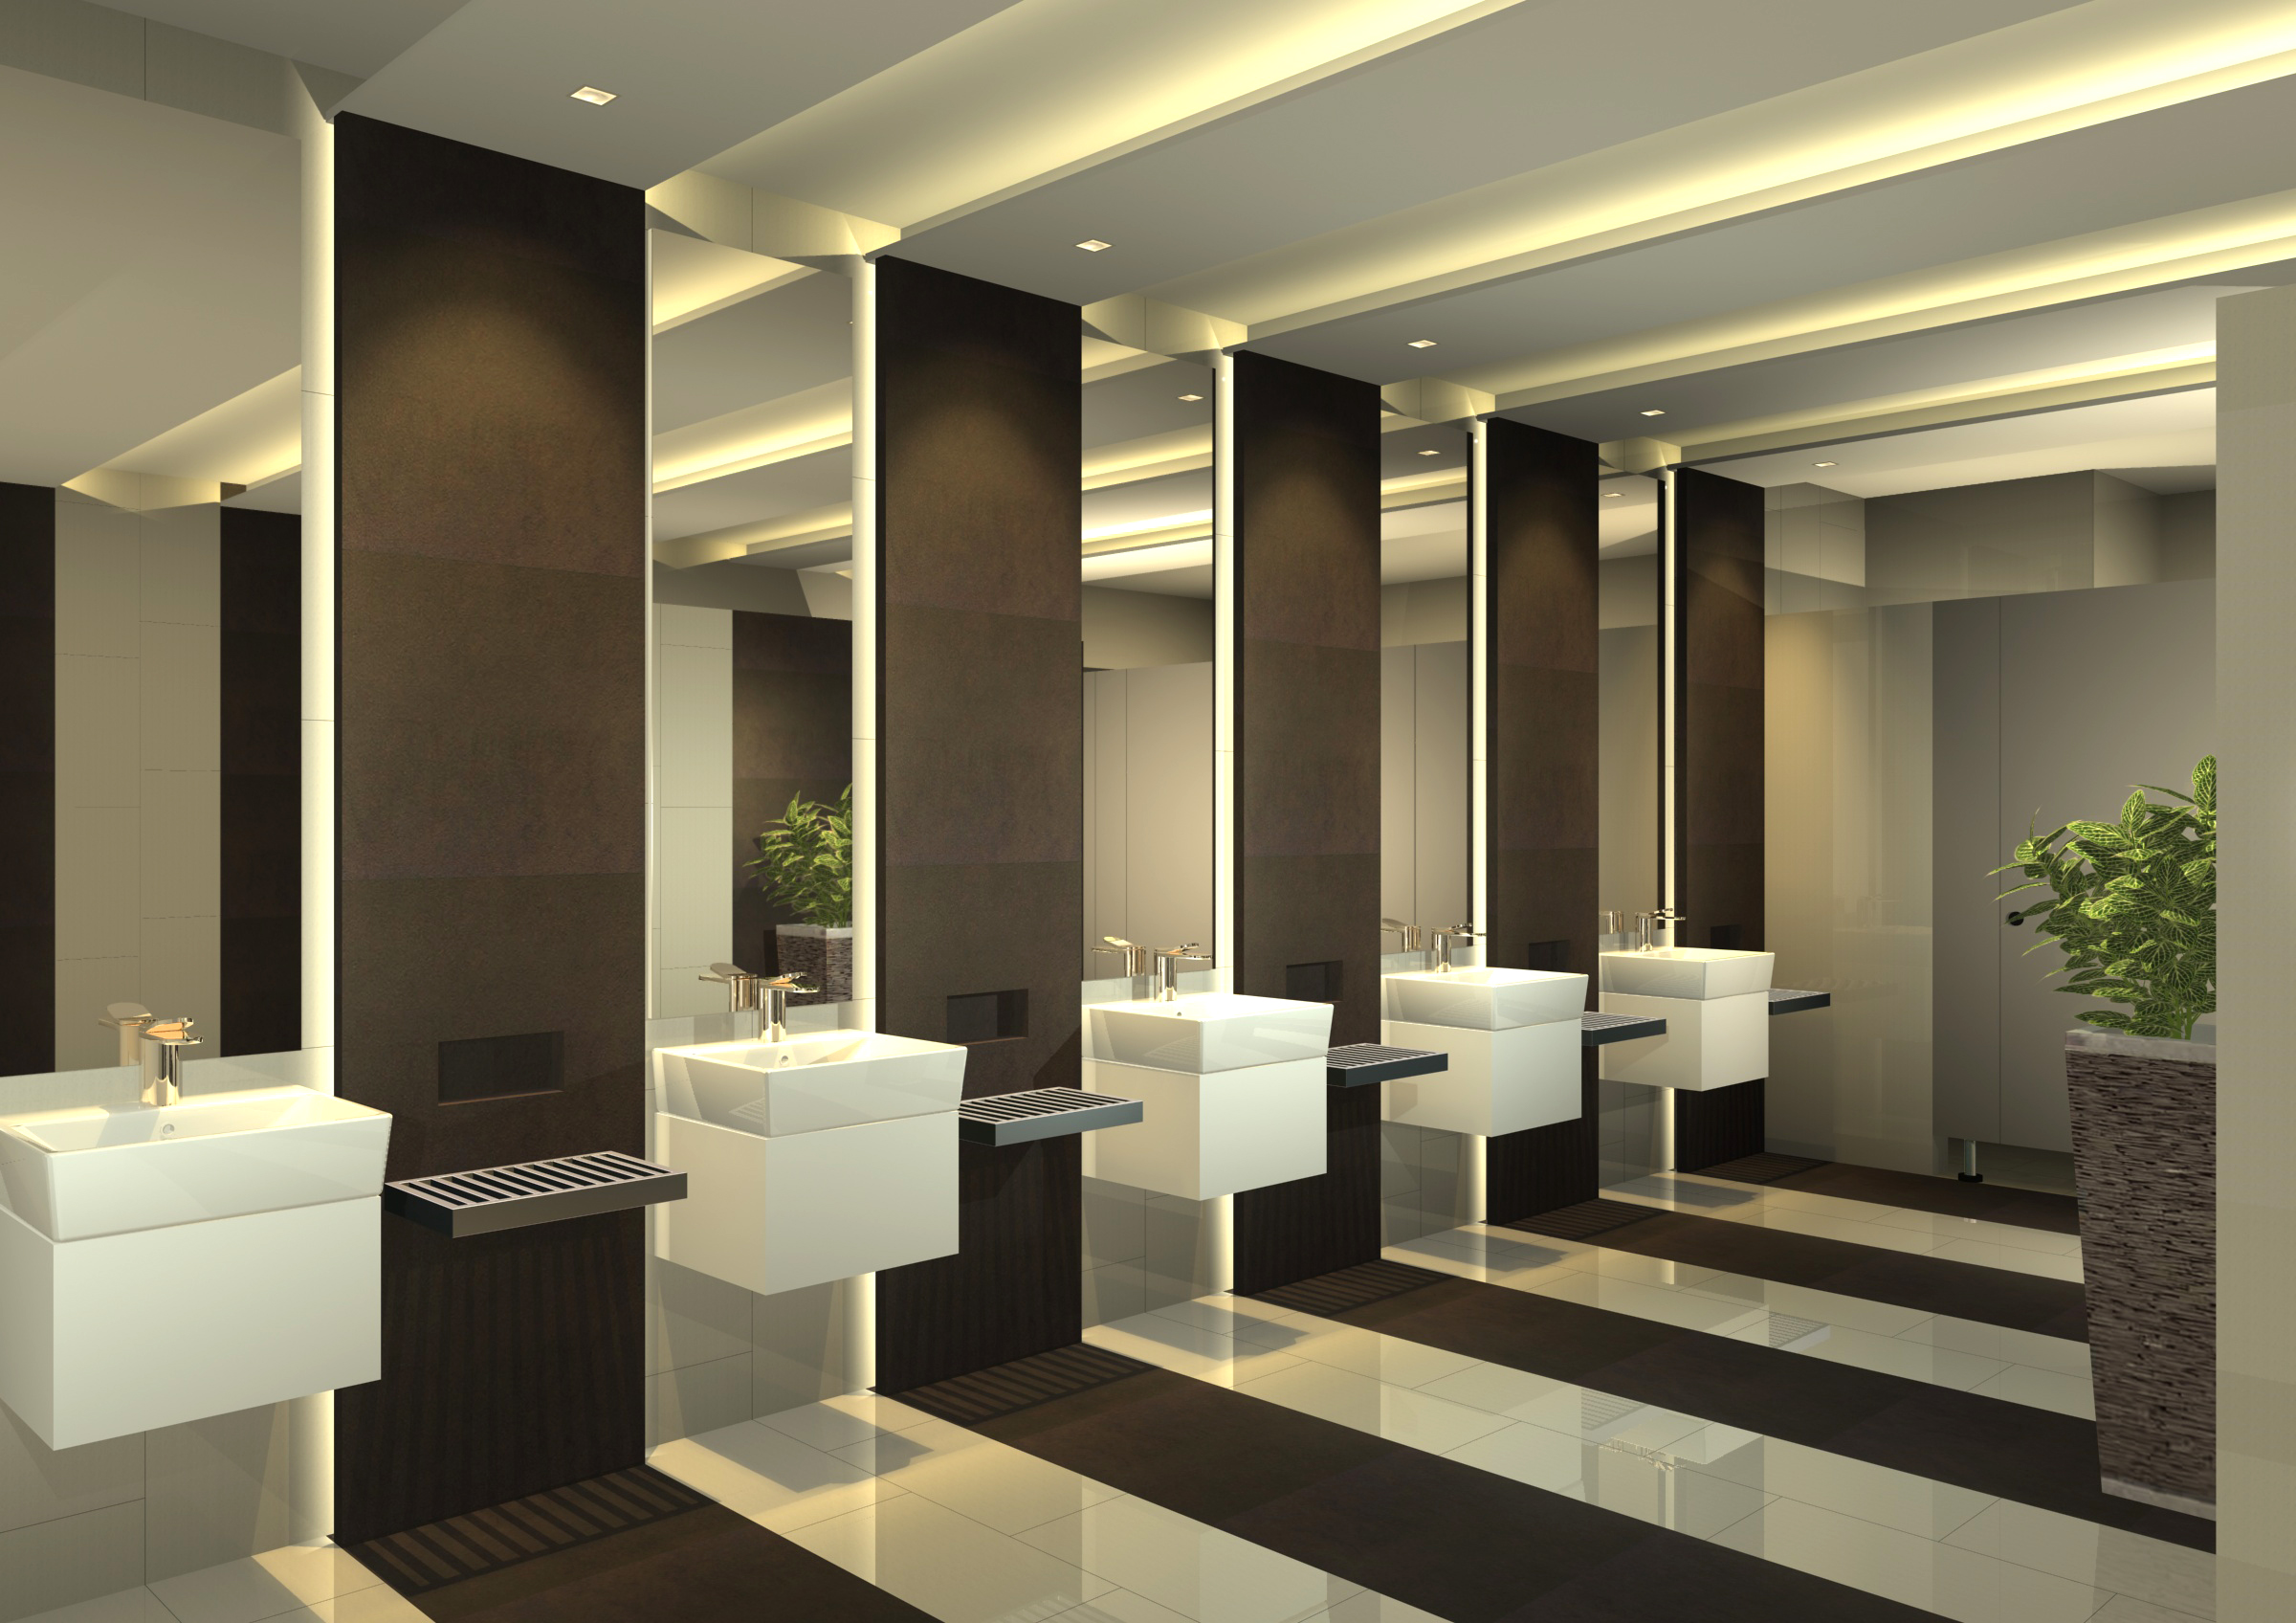 Interior office restroom ecora architects for Washroom interior design